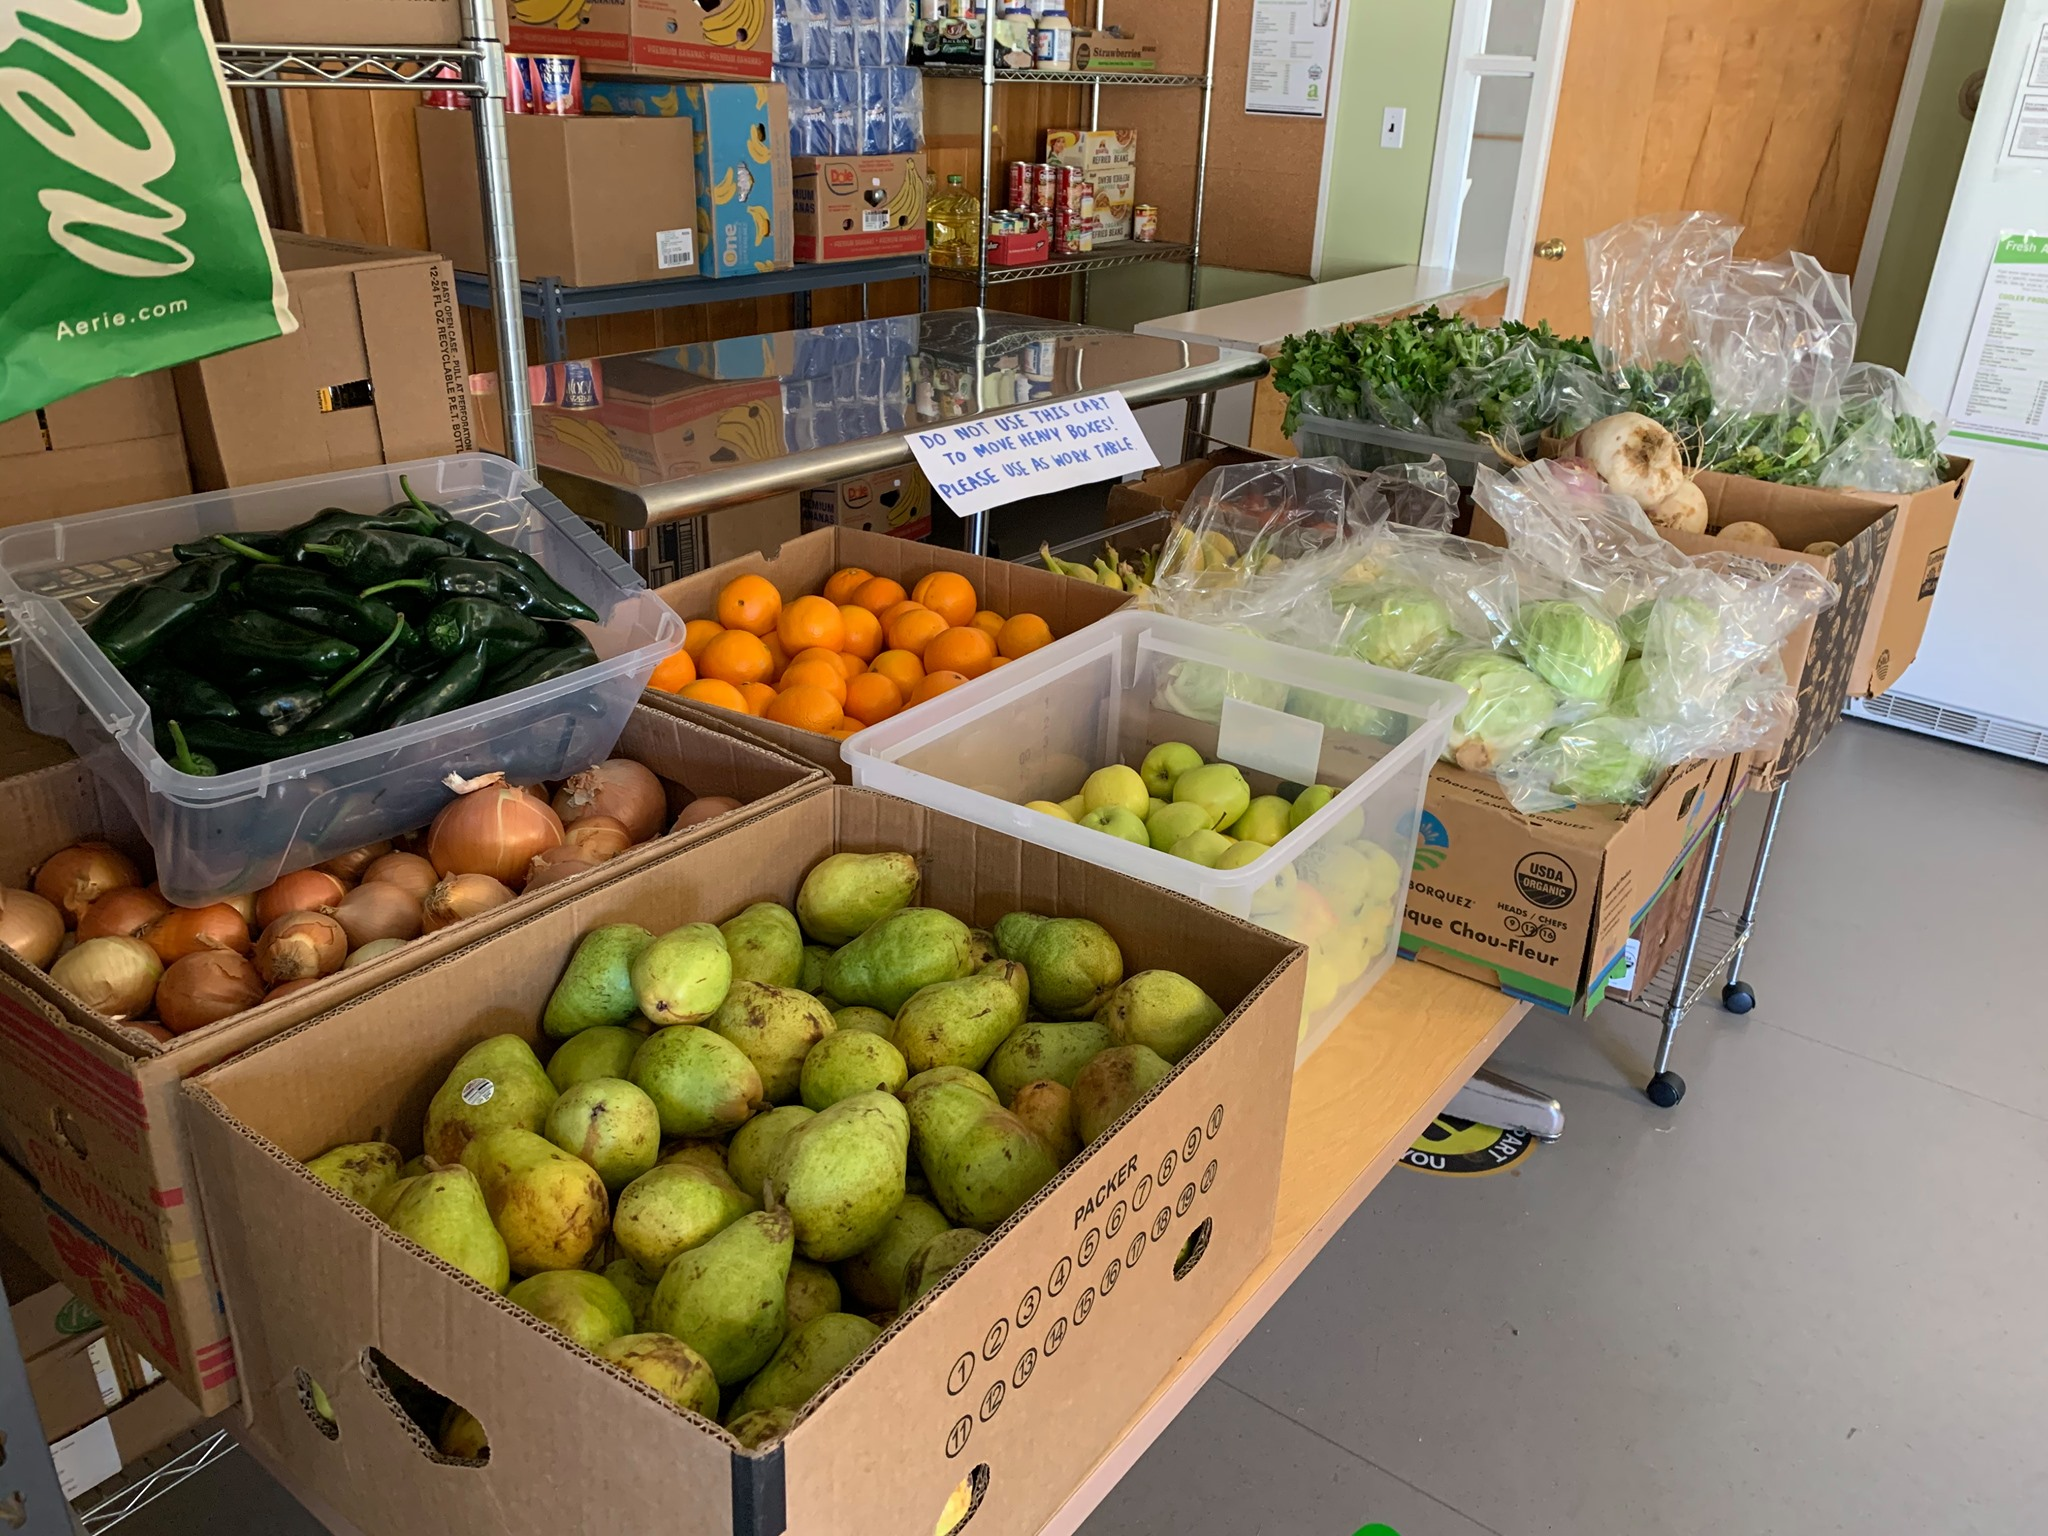 Boxes of produce at UO food pantry.